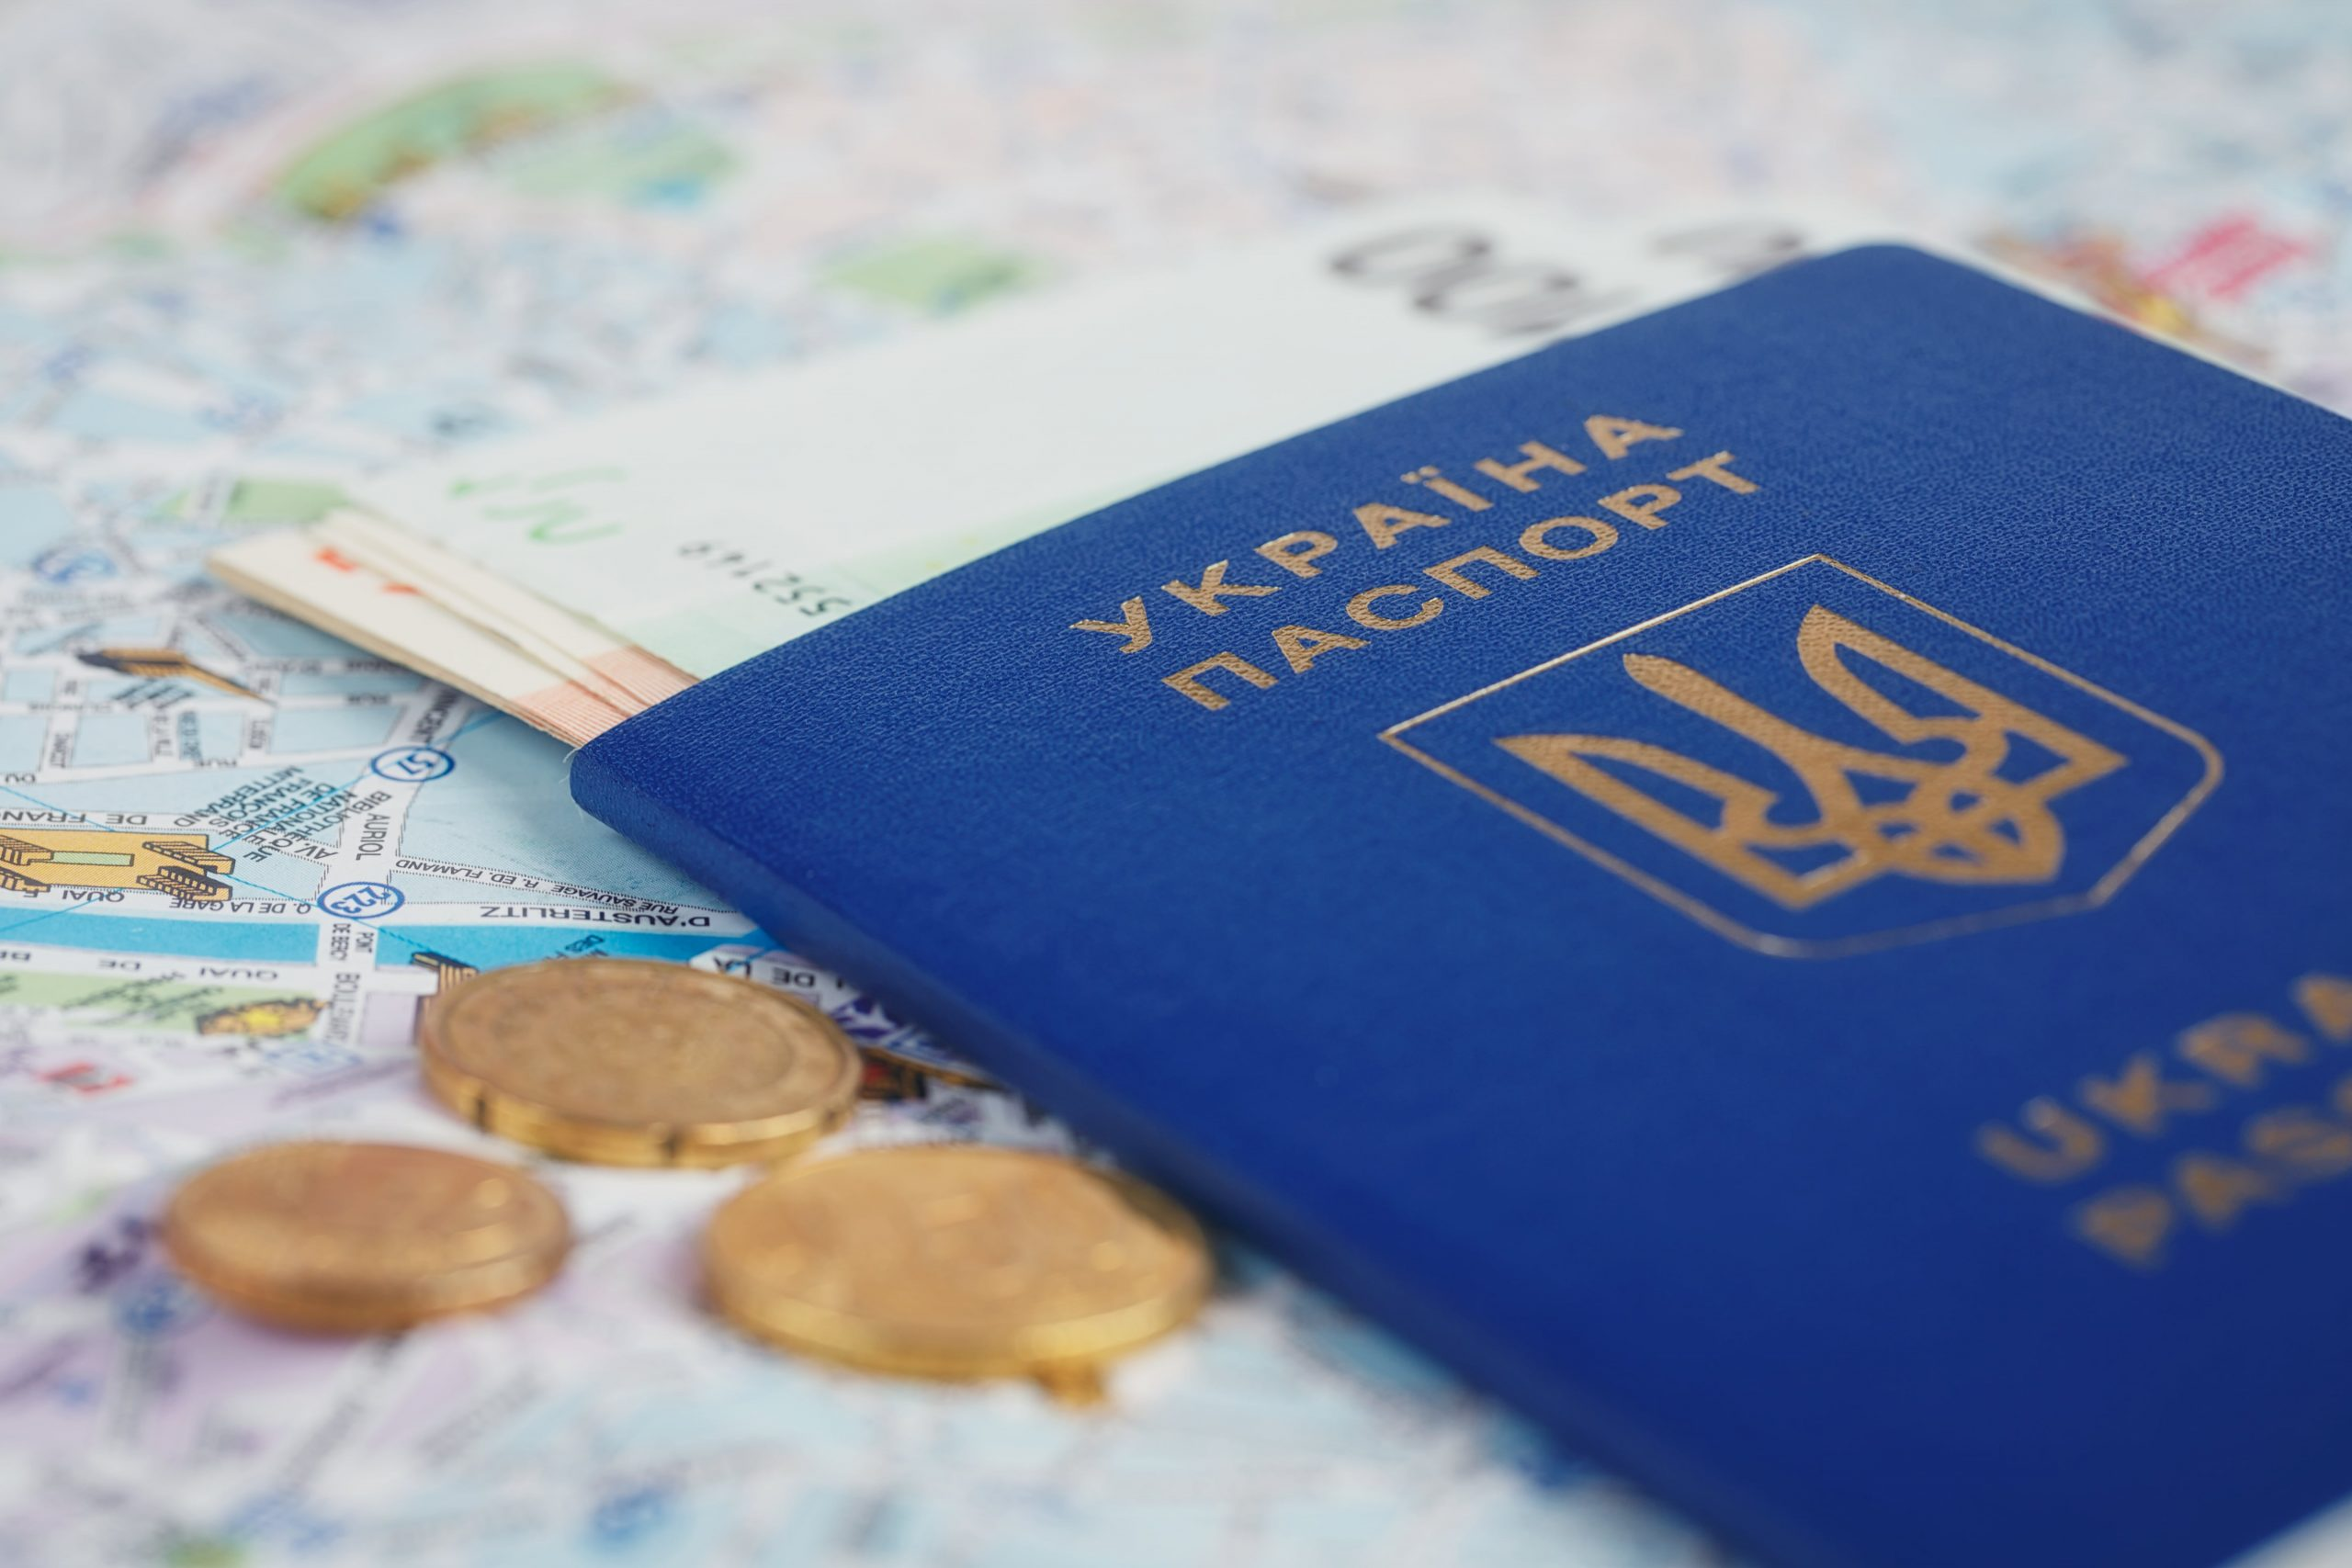 ukrainian-passport-and-money-on-map-UKVZ4YH-min